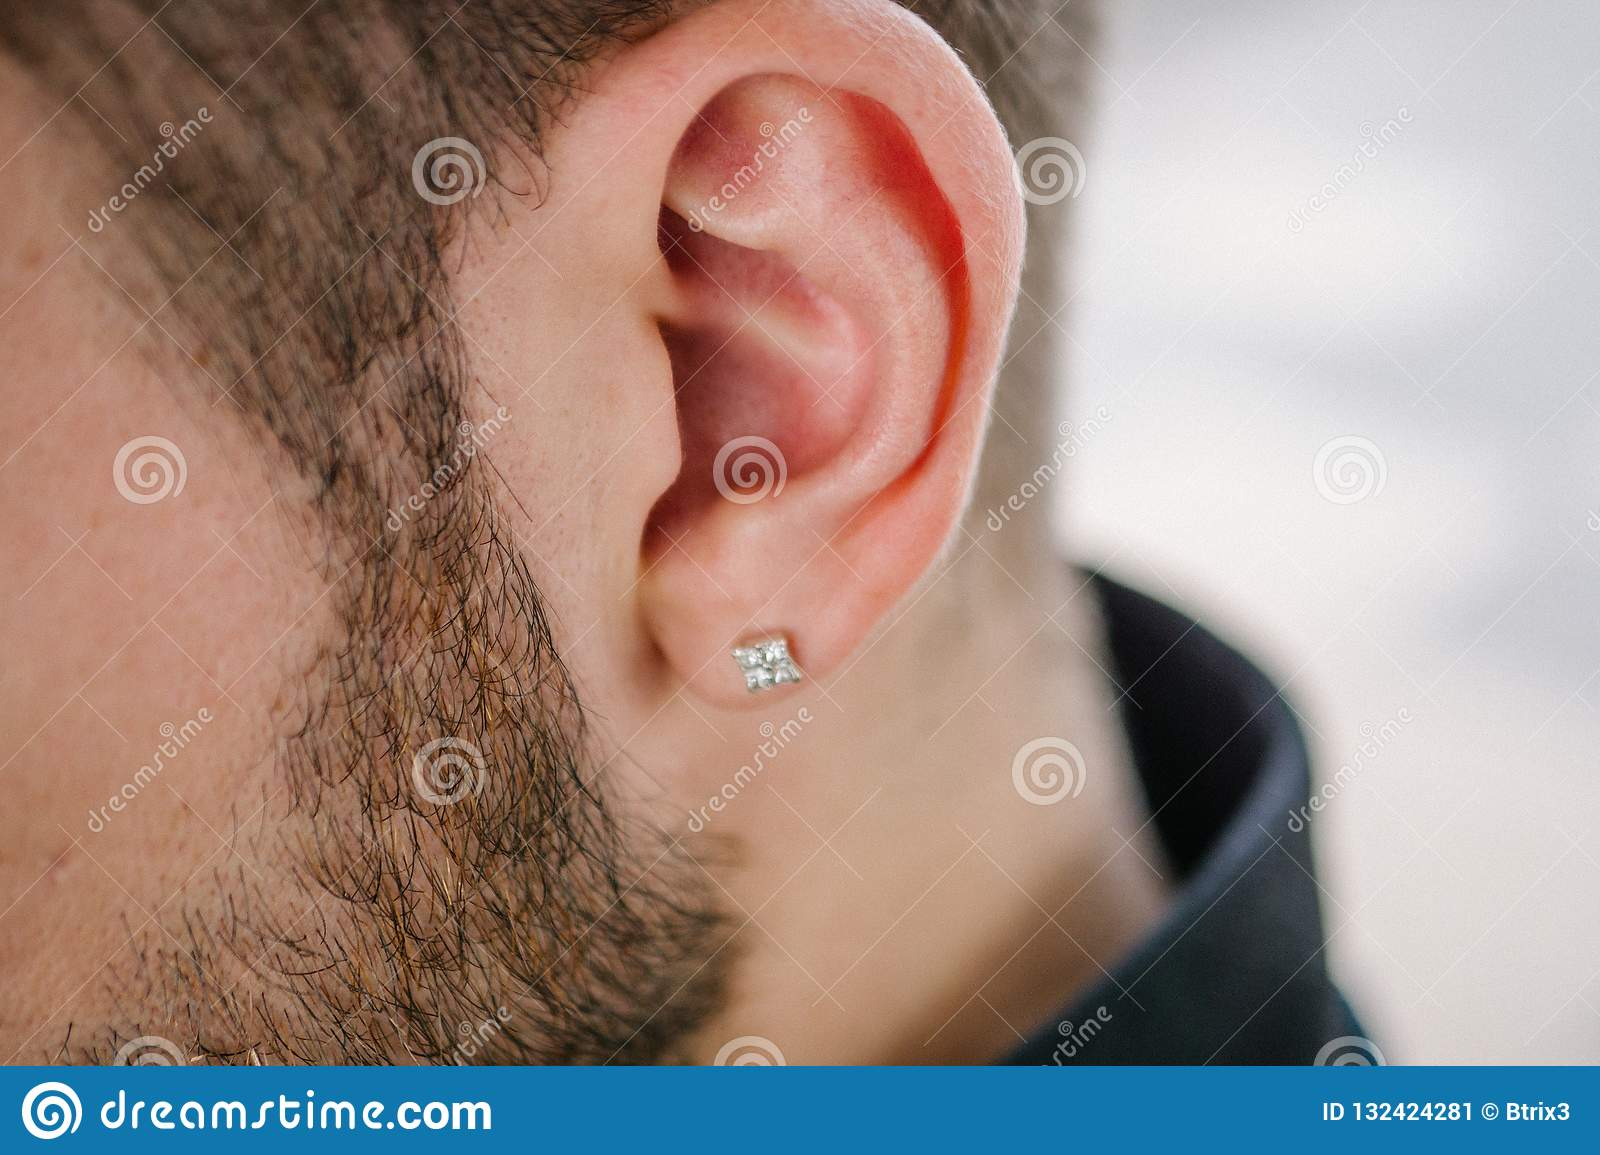 Ears are part of your body